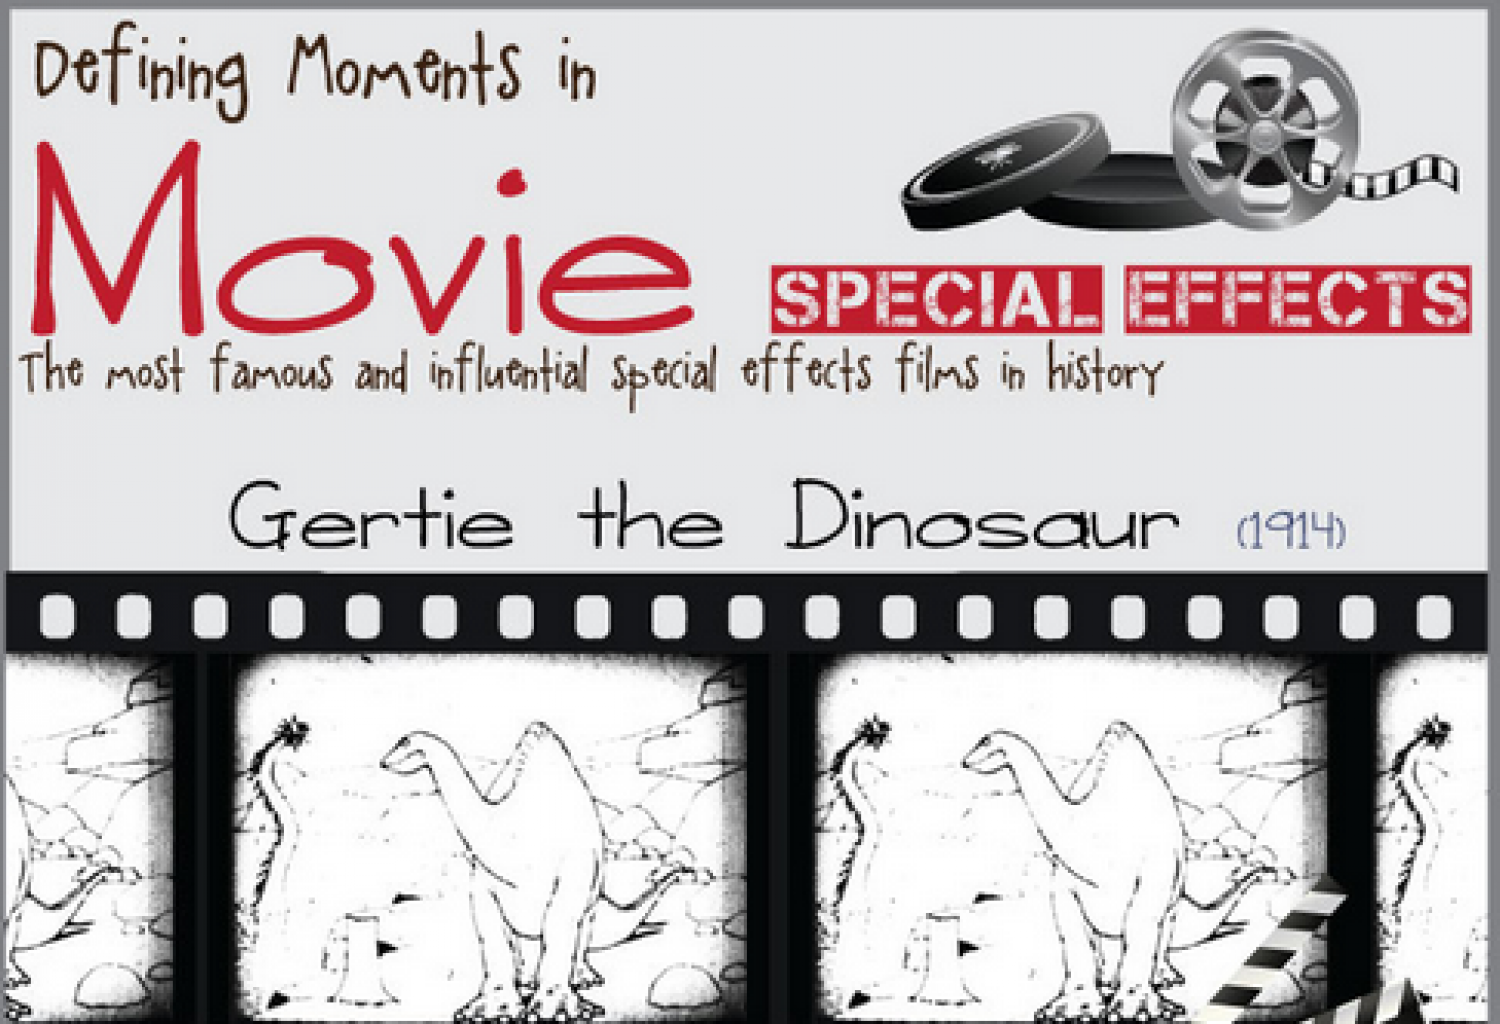 Defining Moments in Movie Special Effects Infographic